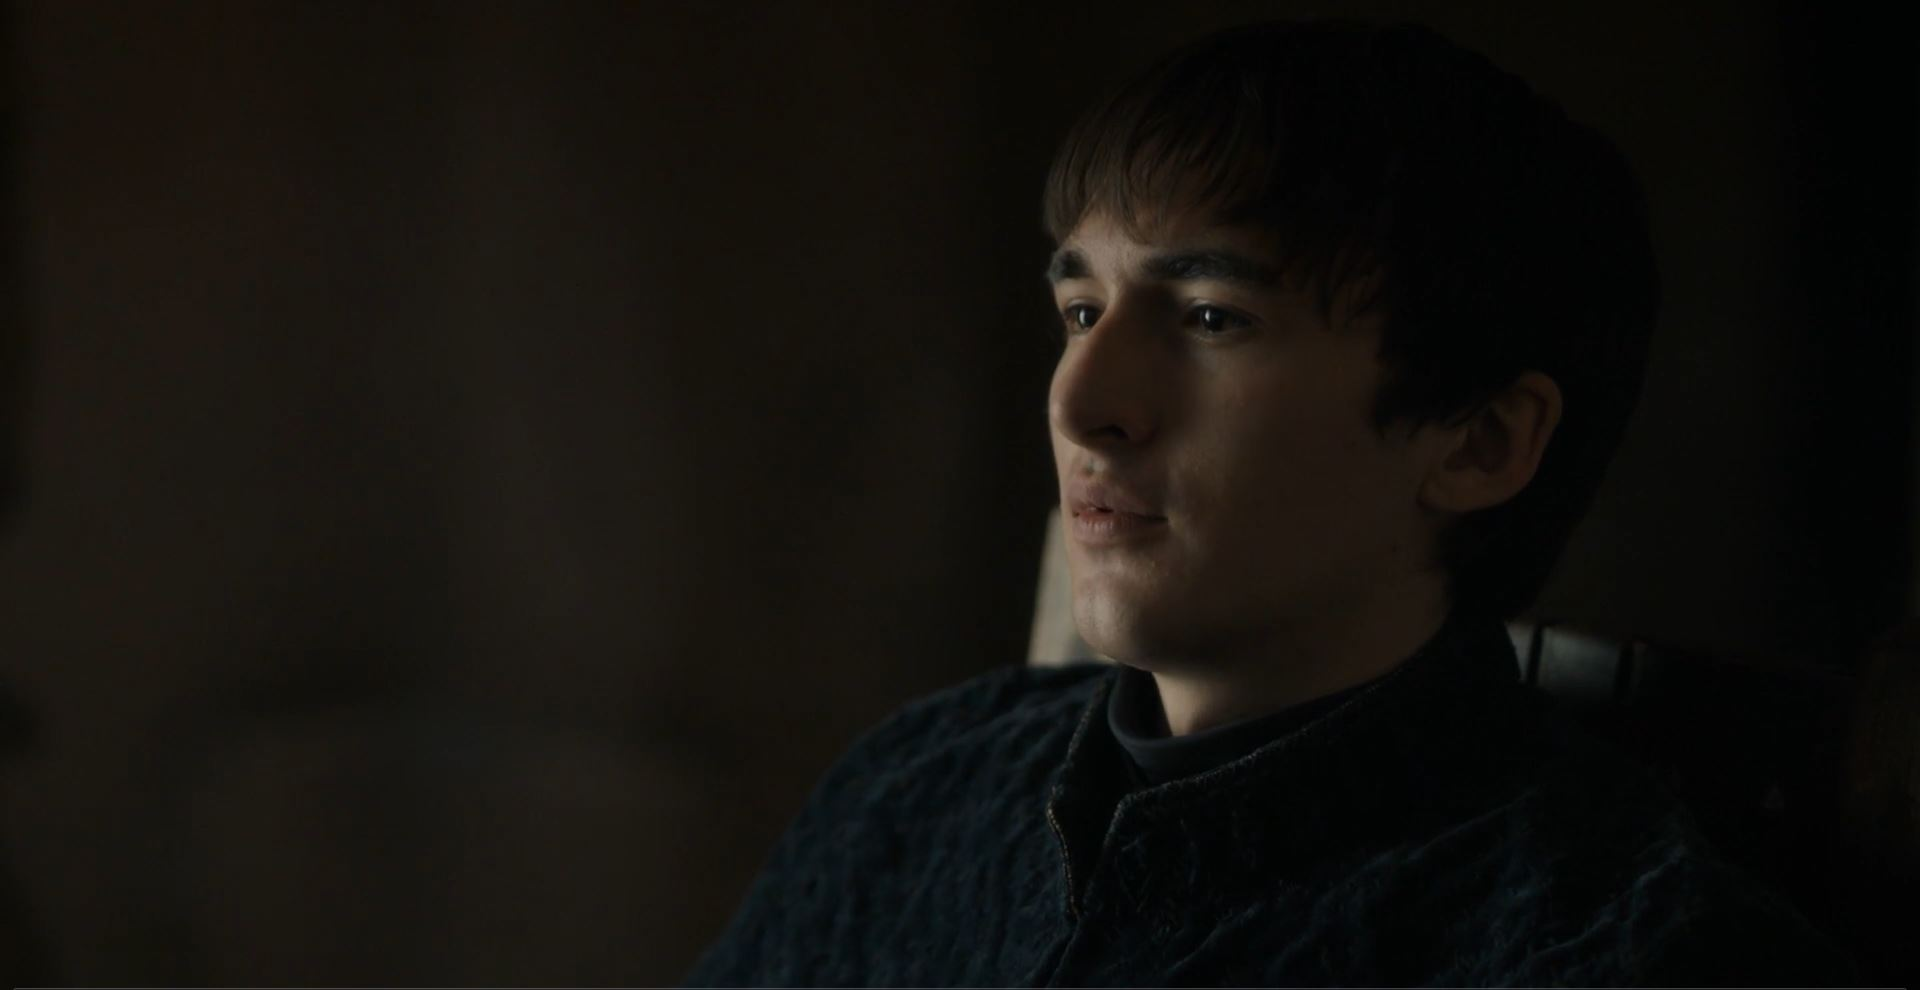 Game of Thrones S08E06 Review - King Bran